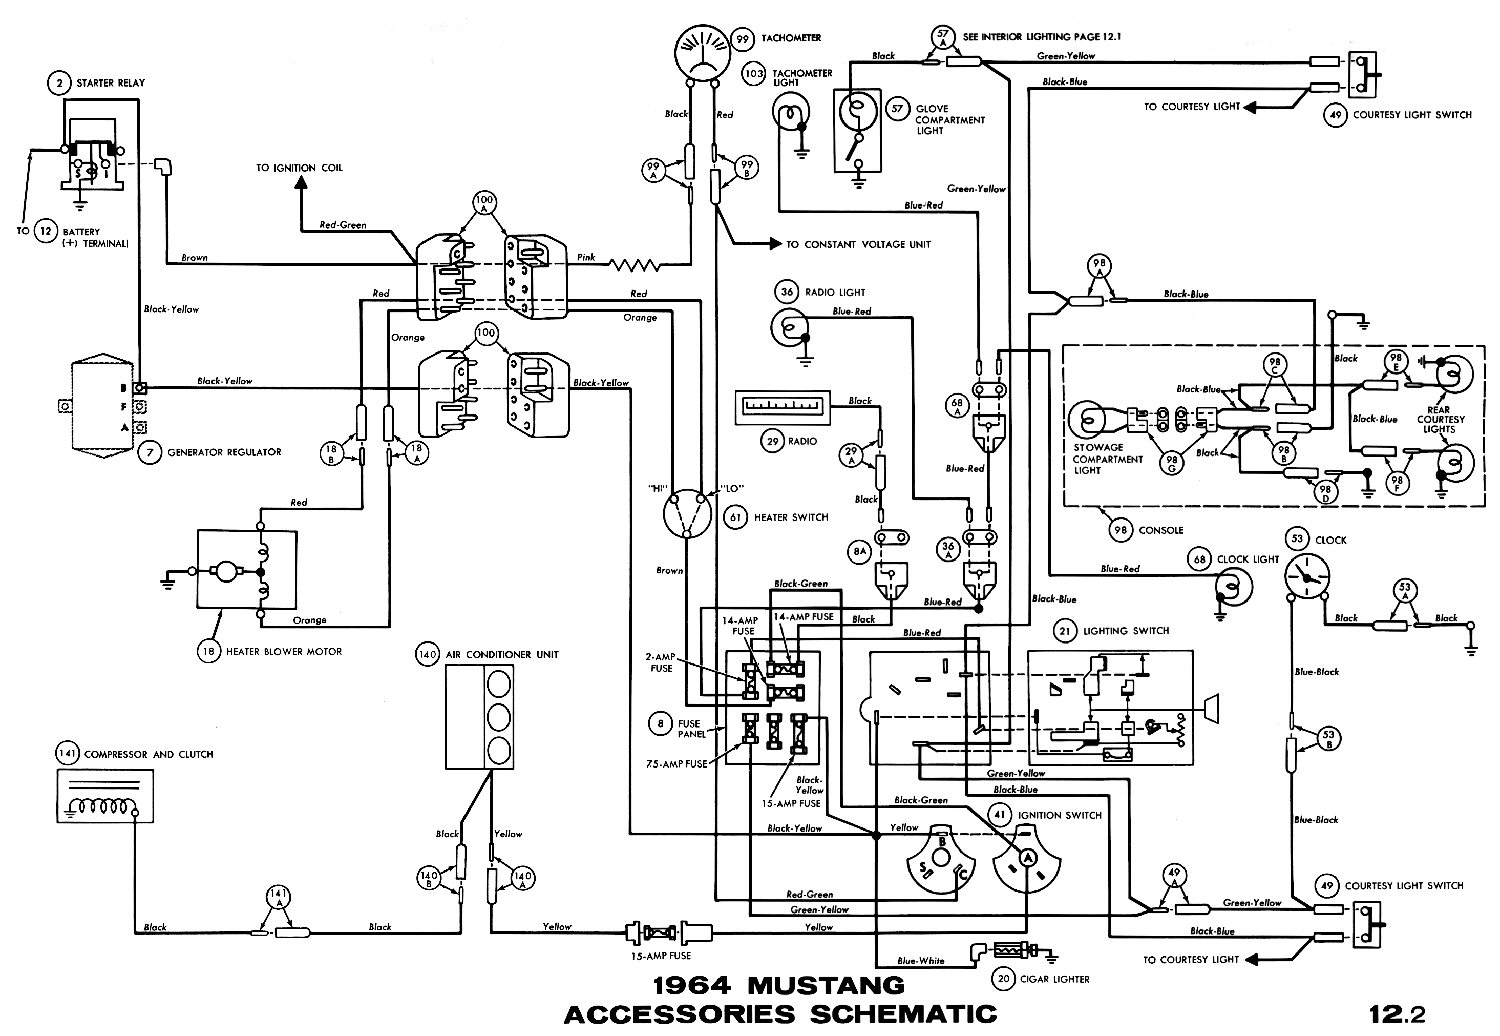 medium resolution of 1964 mustang accessories pictorial or schematic basic electronics 1964 1 2 mustang fuse box diagram